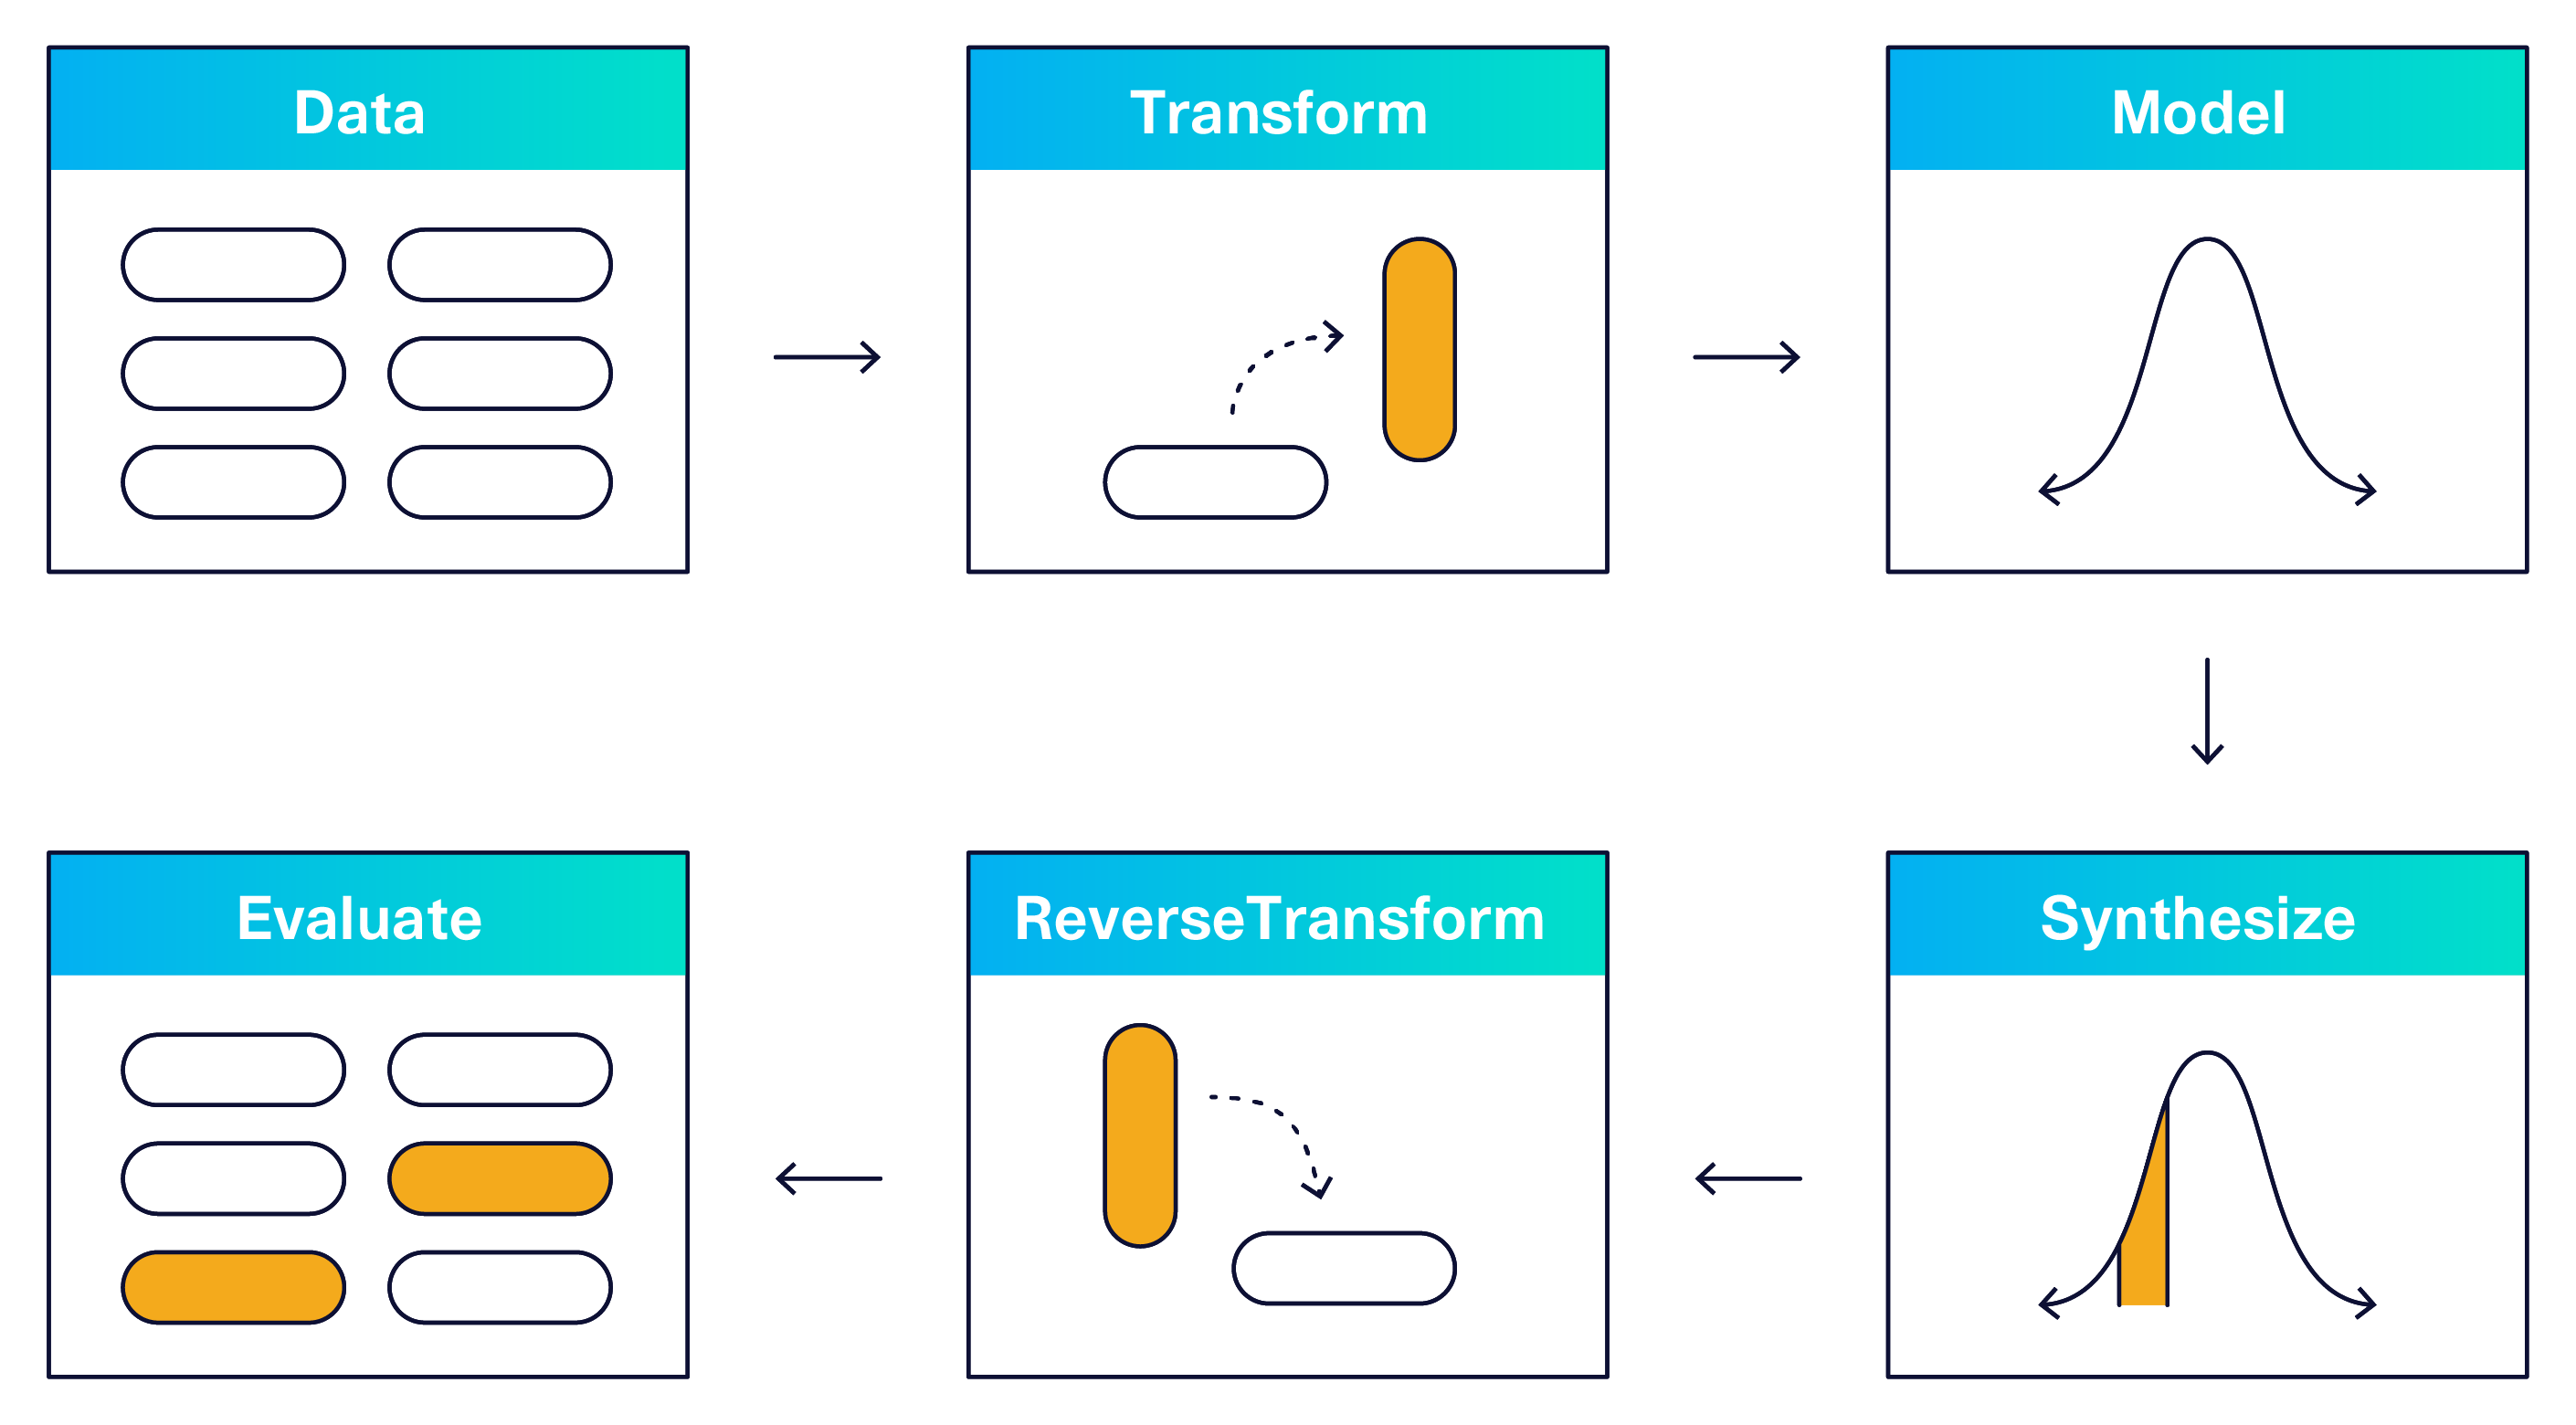 An illustration of the synthetic data workflow: Transforming data, modeling, synthesizing, reverse transforming, and evaluating.